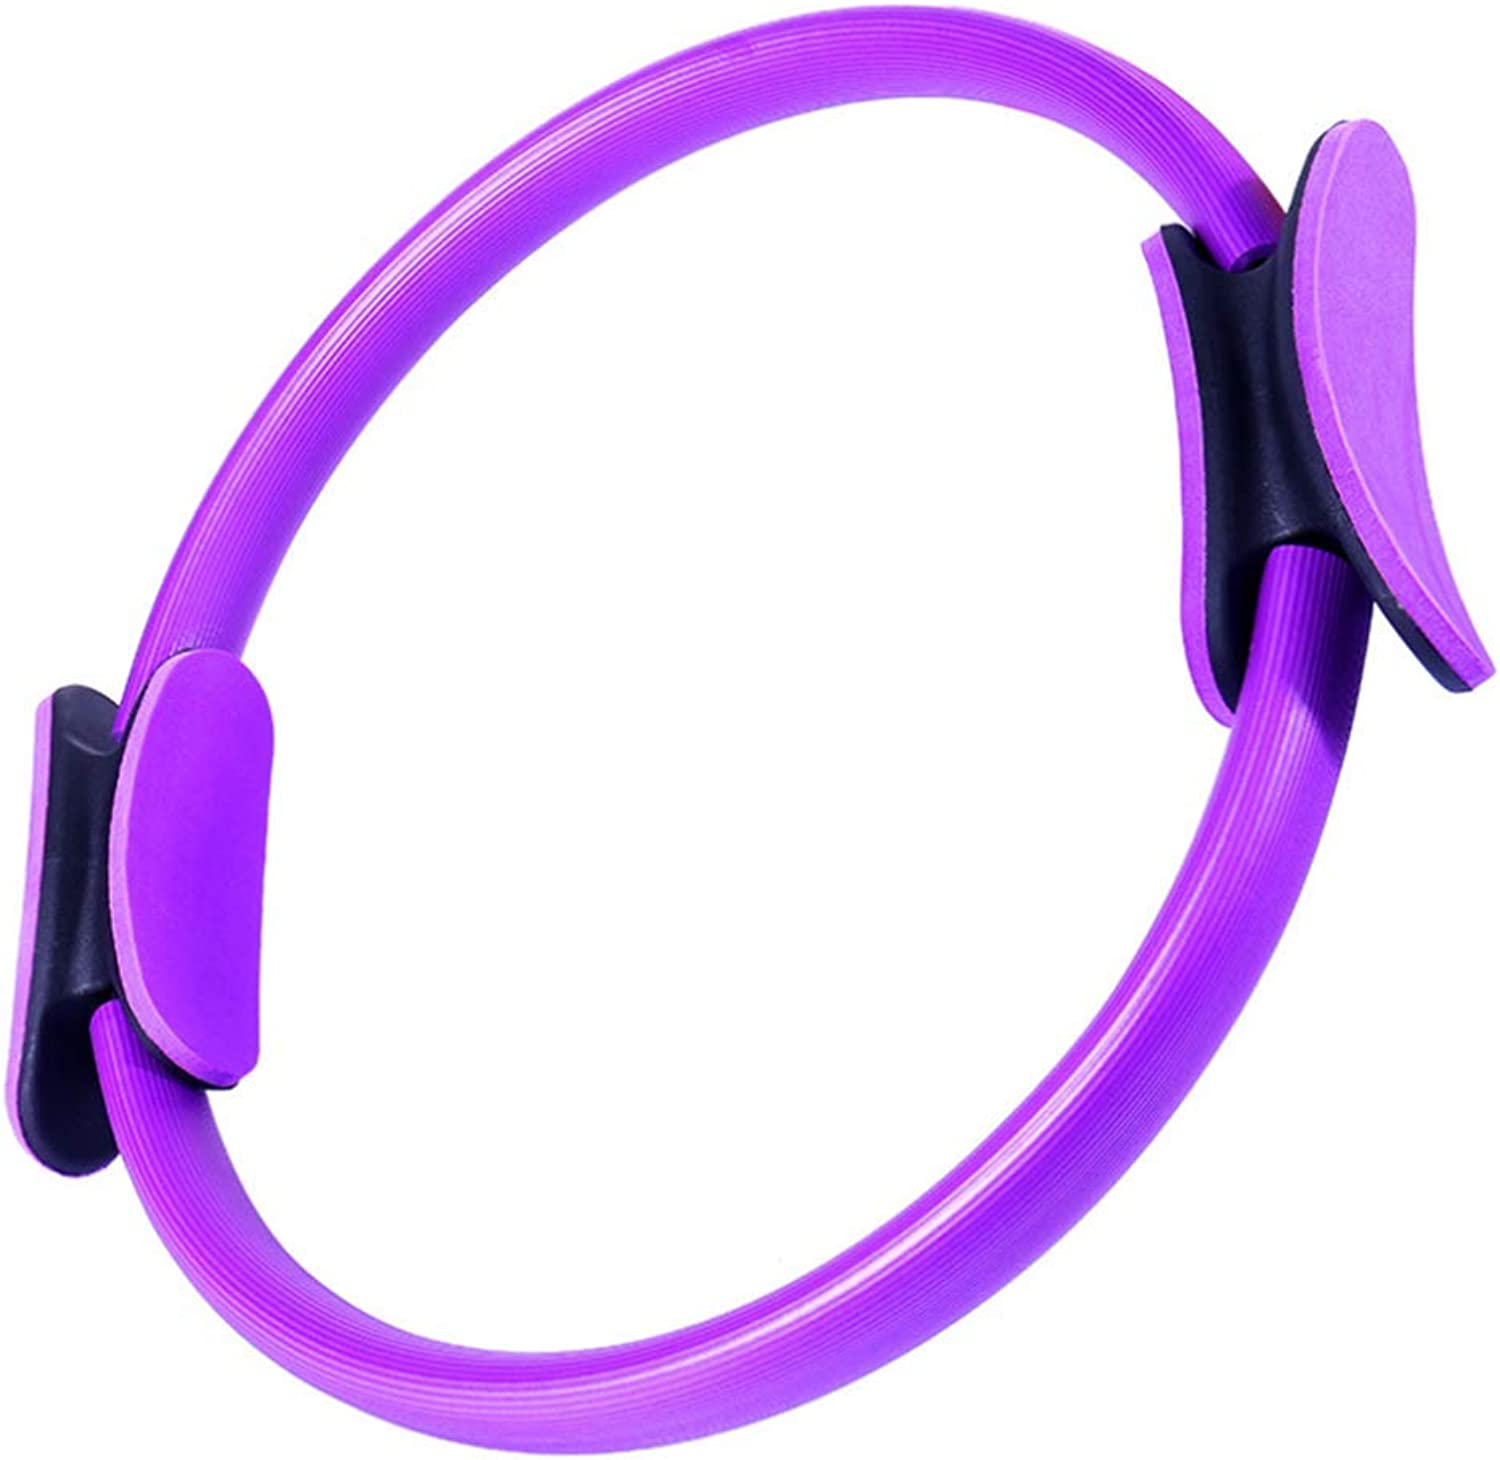 Pilates Ring Fitness Circle With38 cm Diameter Magic Training, Full Body Toning, Power Resistance for Yoga Arm, Leg Gym Home Office